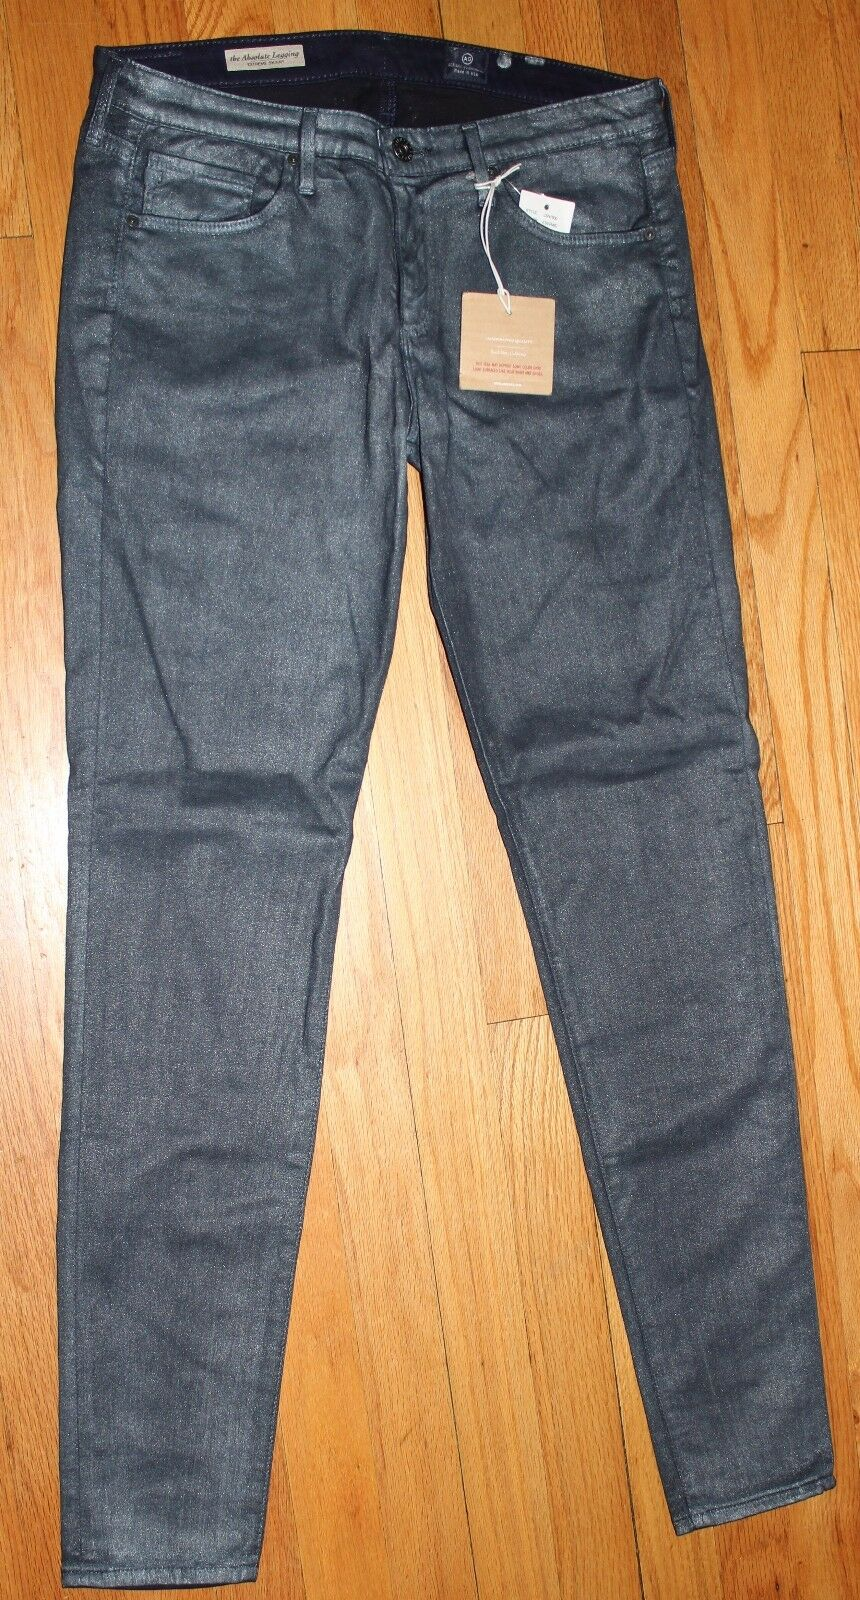 178 AG ADRIANO goldSCHMIED THE ABSOLUTE LEGGING EXTREME SKINNY JEANS SZ 29